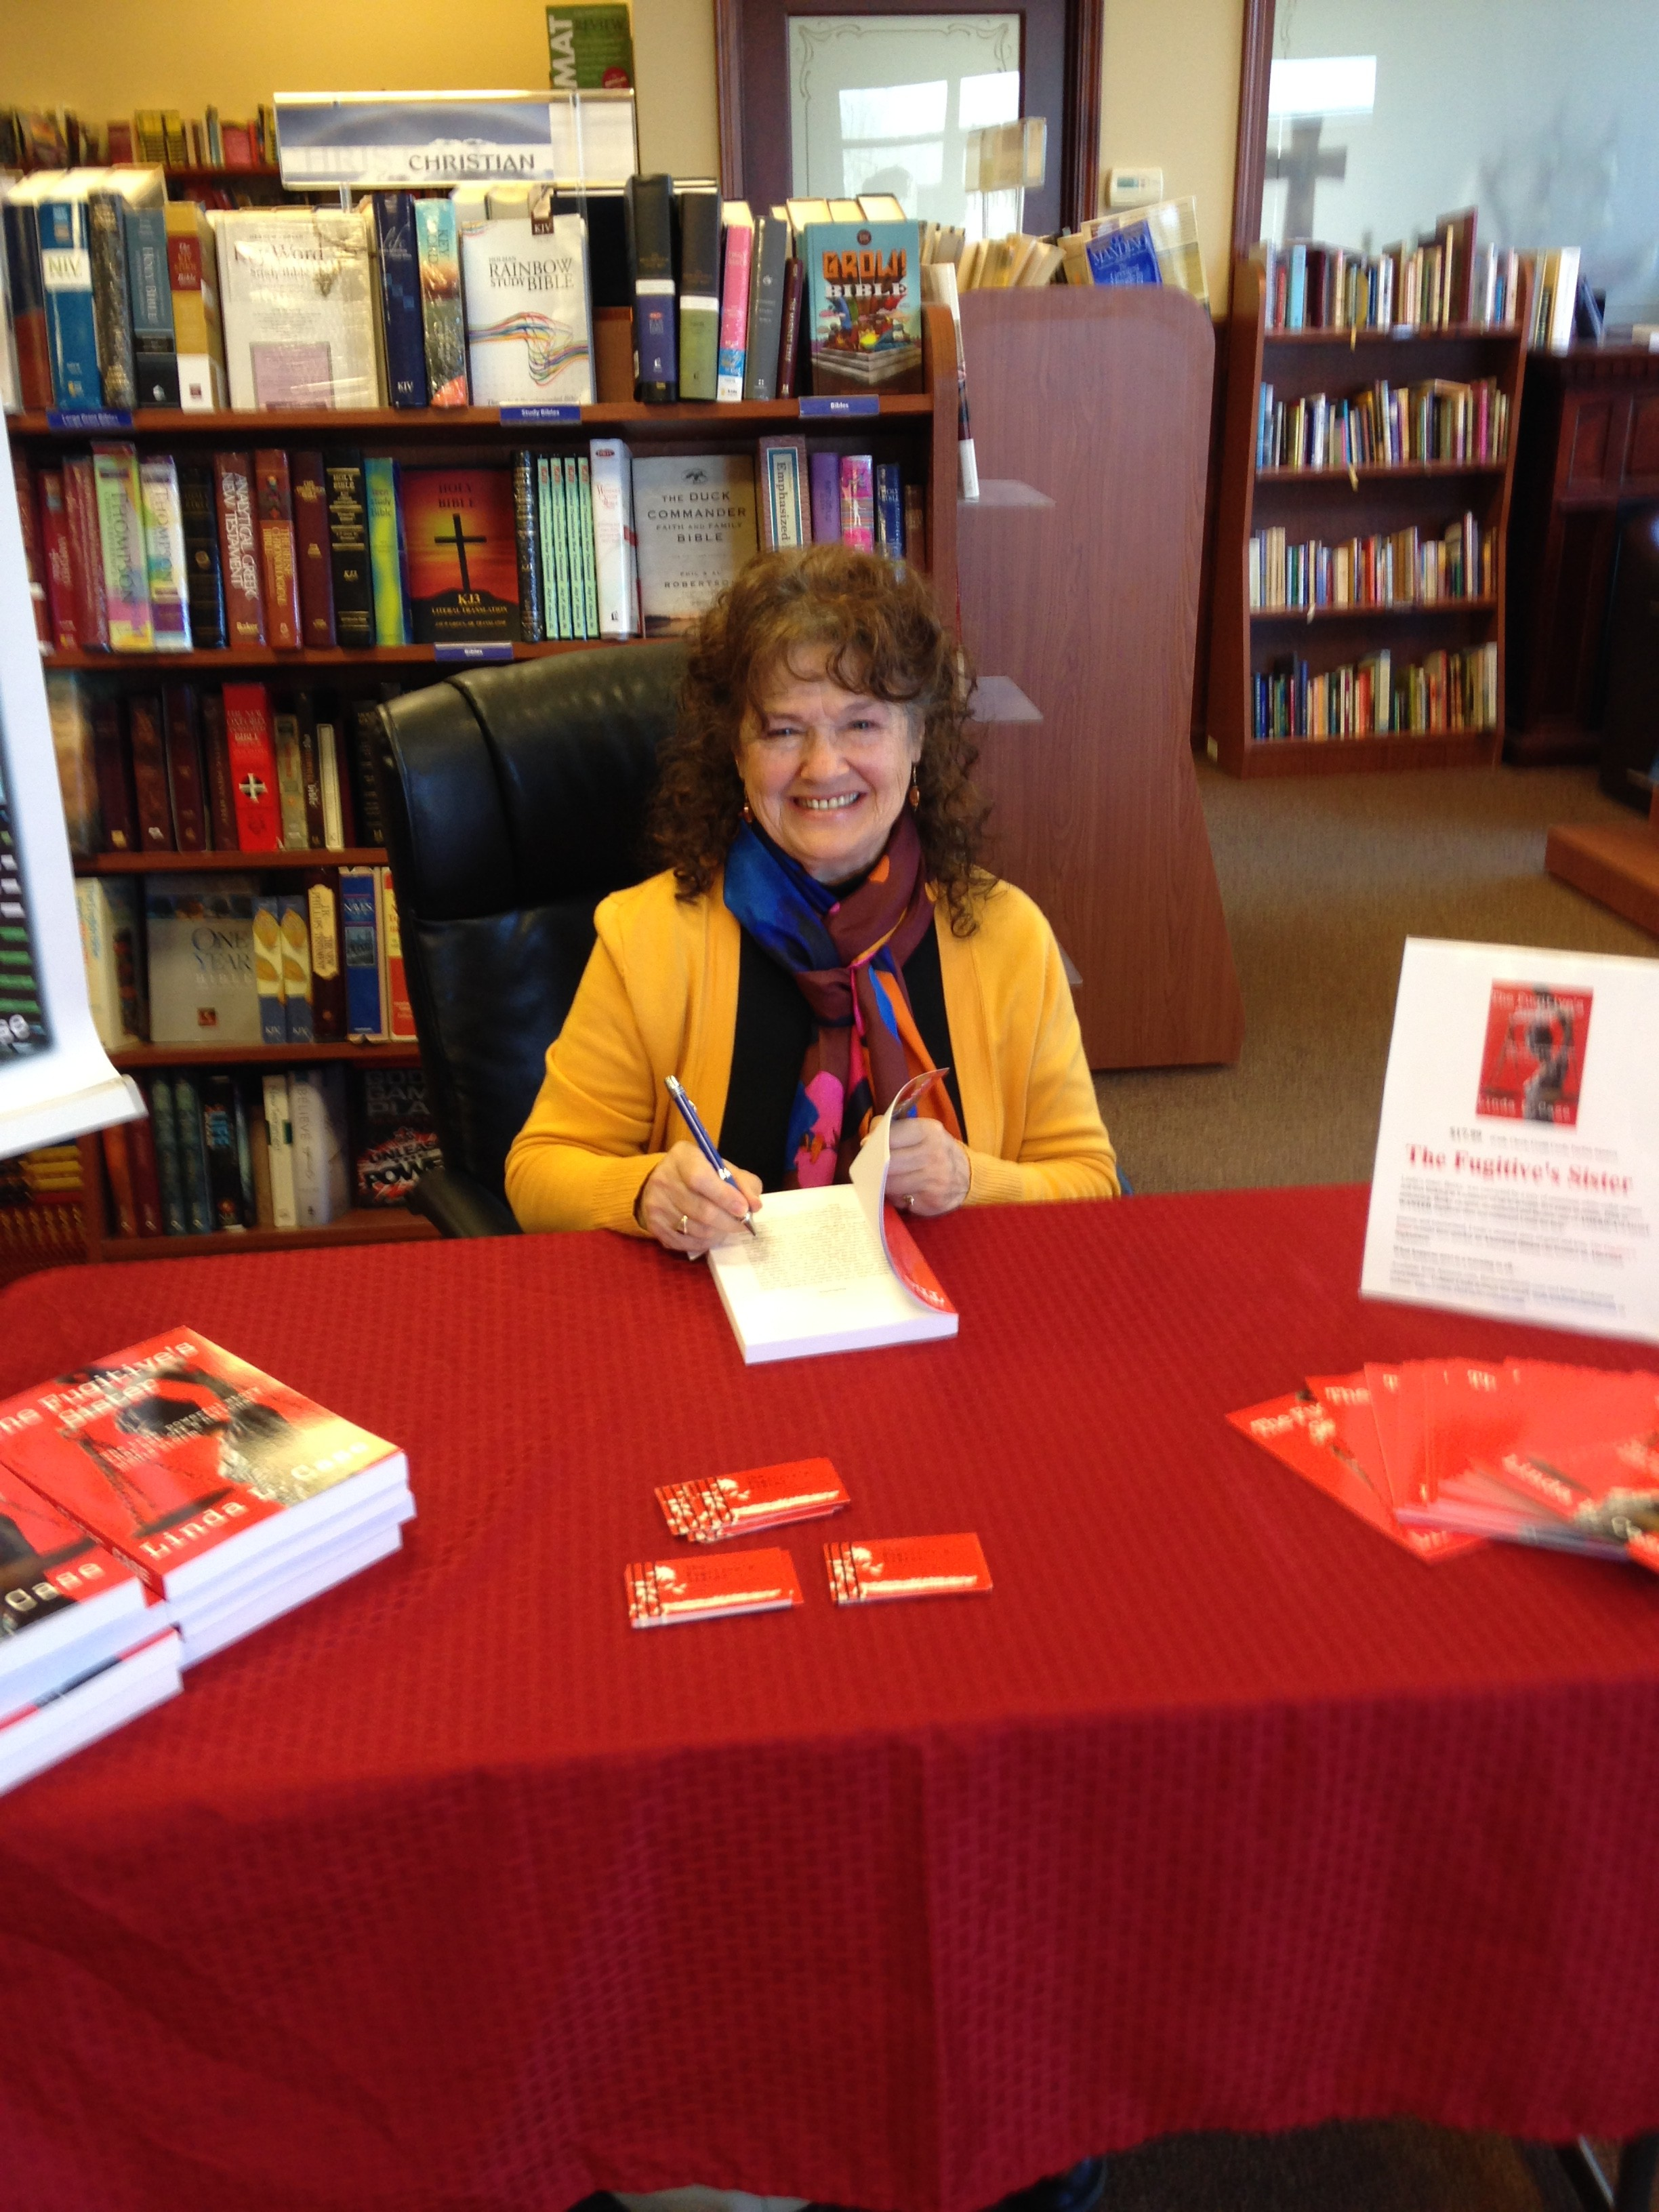 Linda at book signing